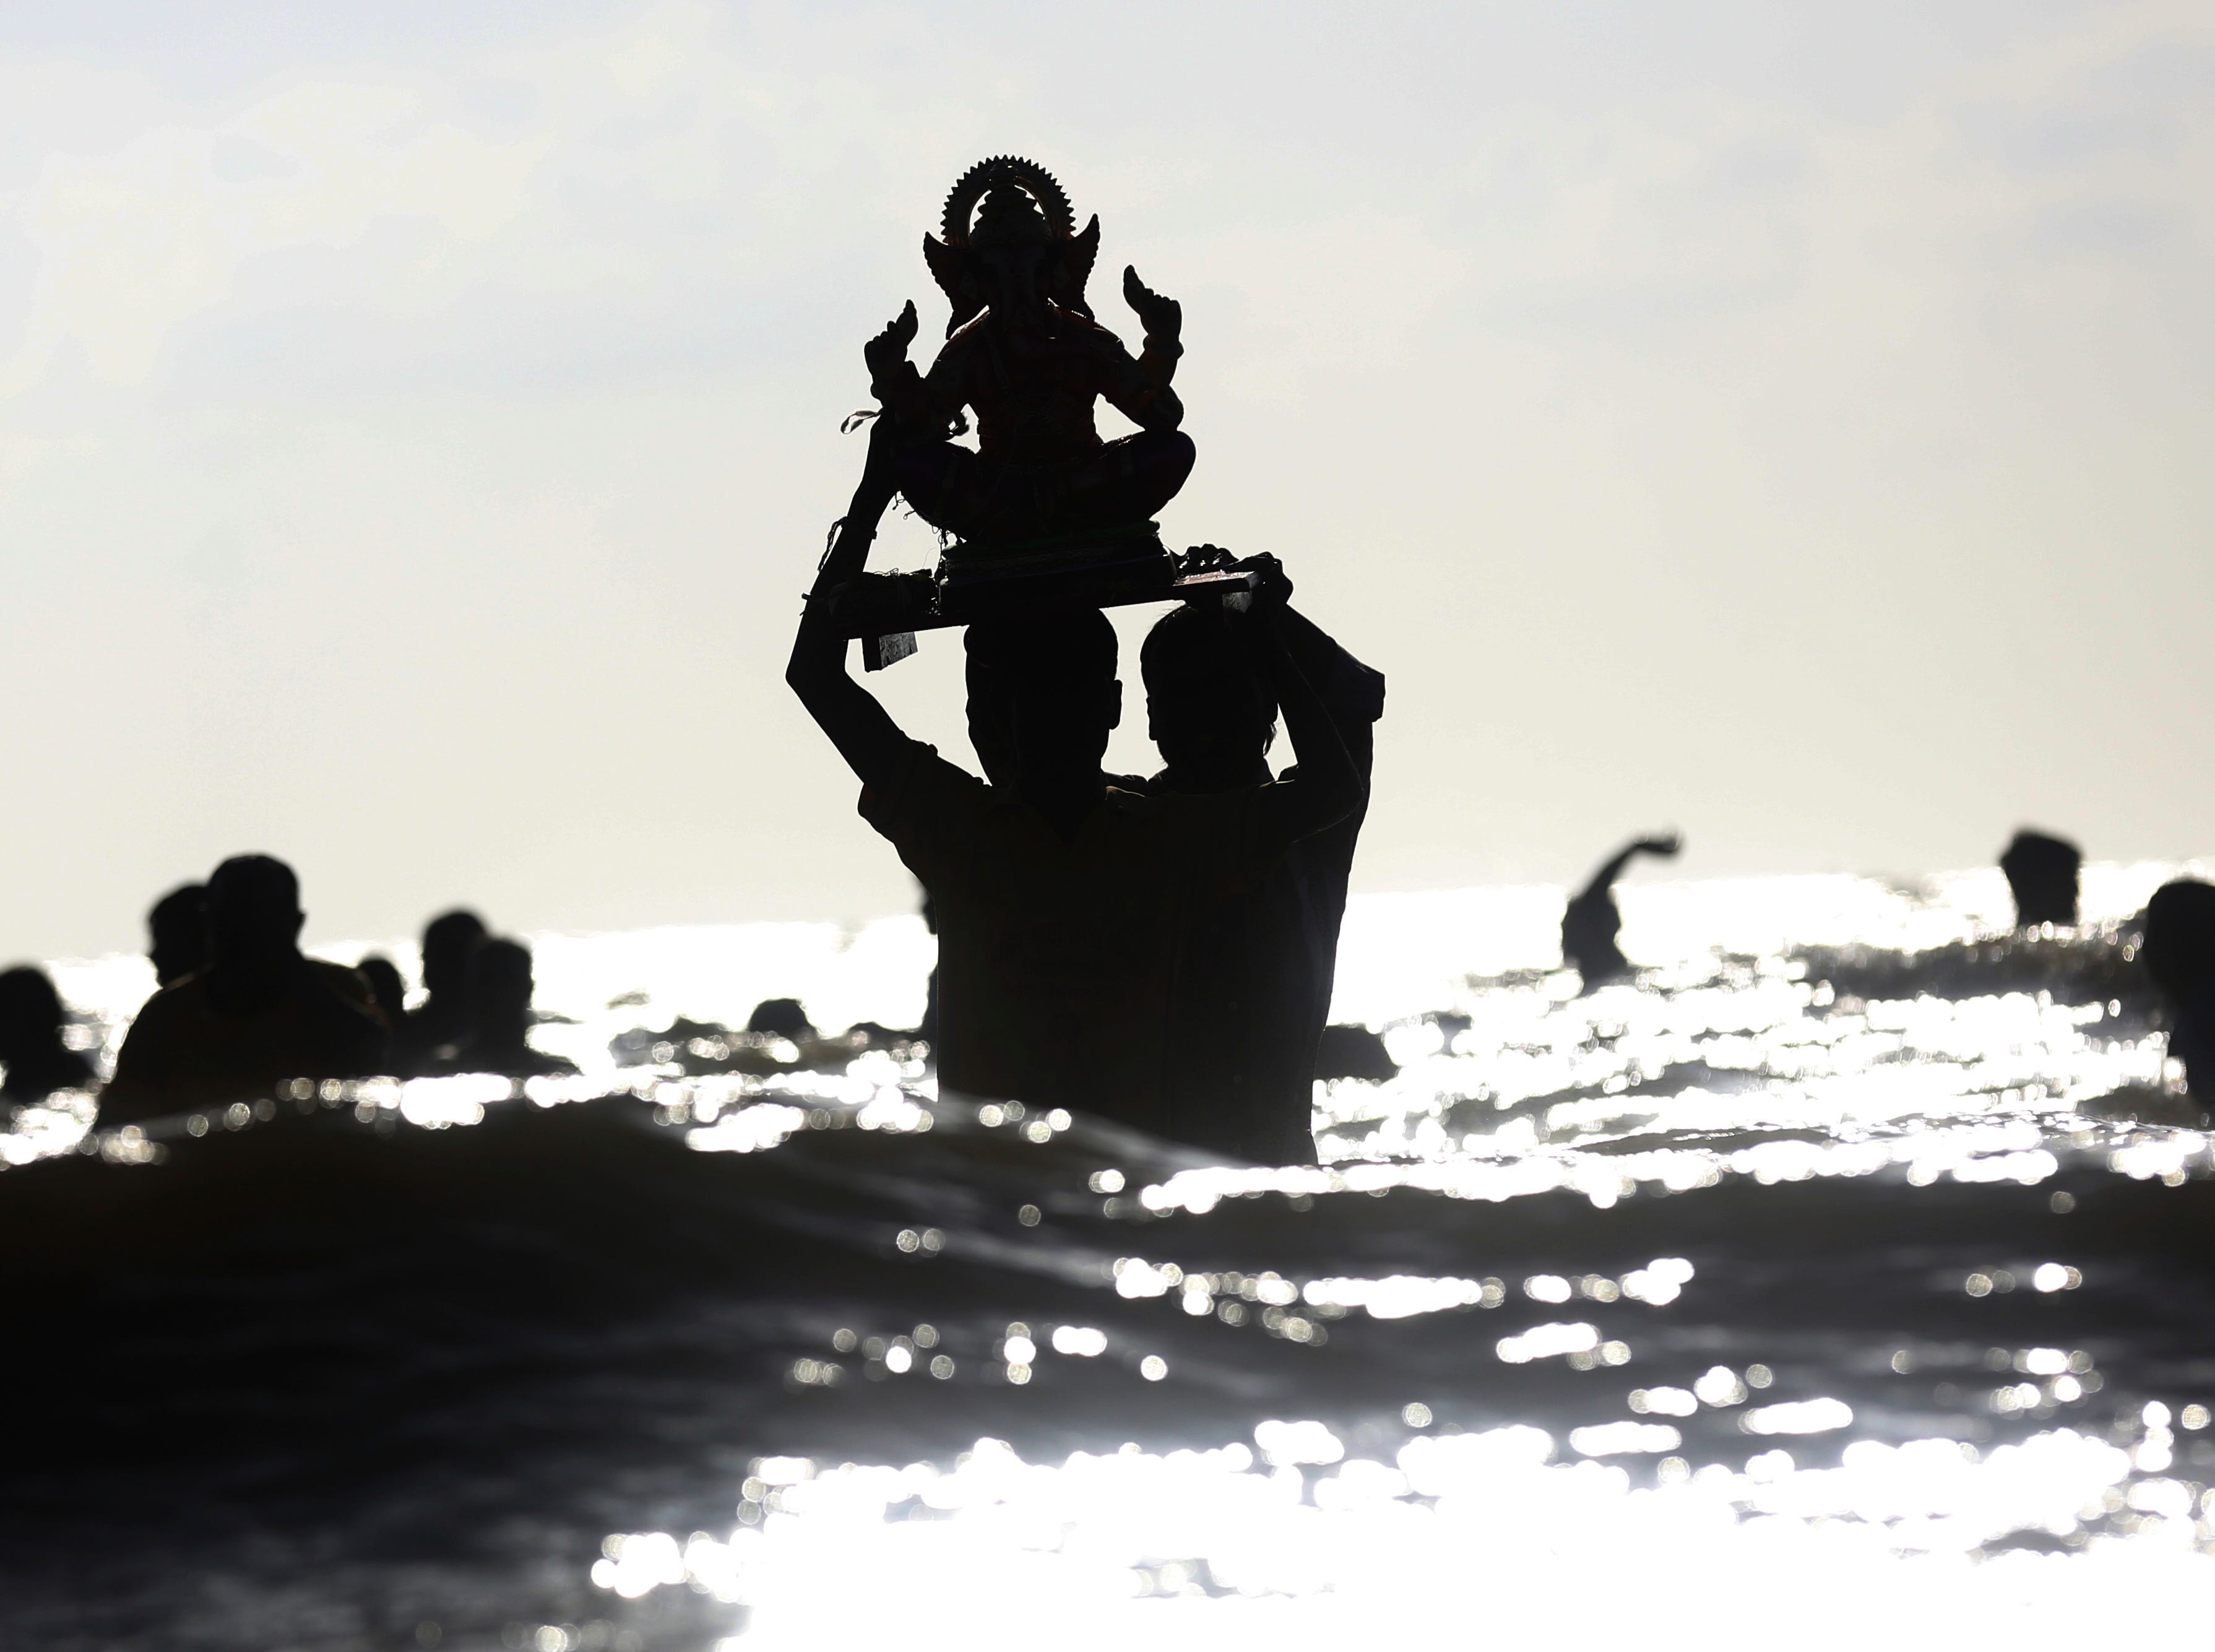 Devotees carry a Hindu god Ganesha idol into the Arabian sea for immersion on the fifth day of ten days long Ganesha festival in Mumbai, India, Monday, Sept. 17, 2018.